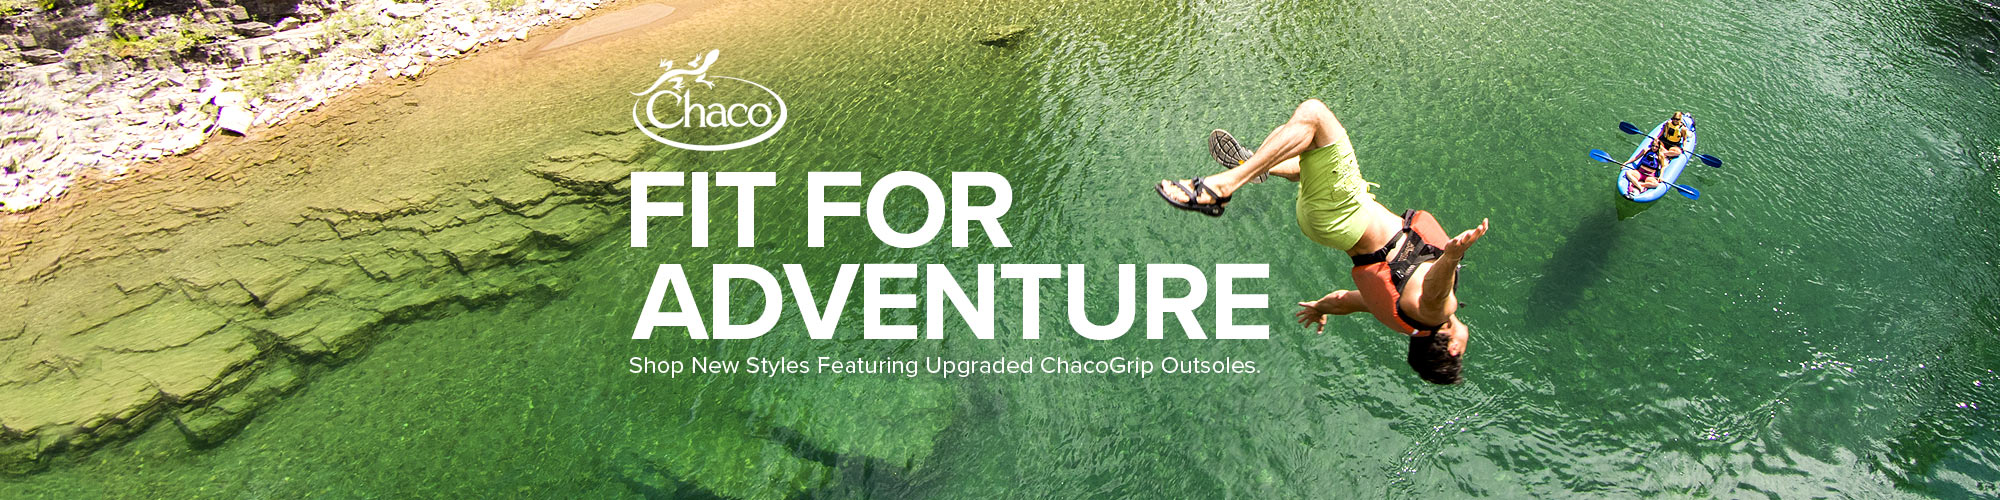 Shop new styles from Chaco featuring ChacoGrip outsoles.